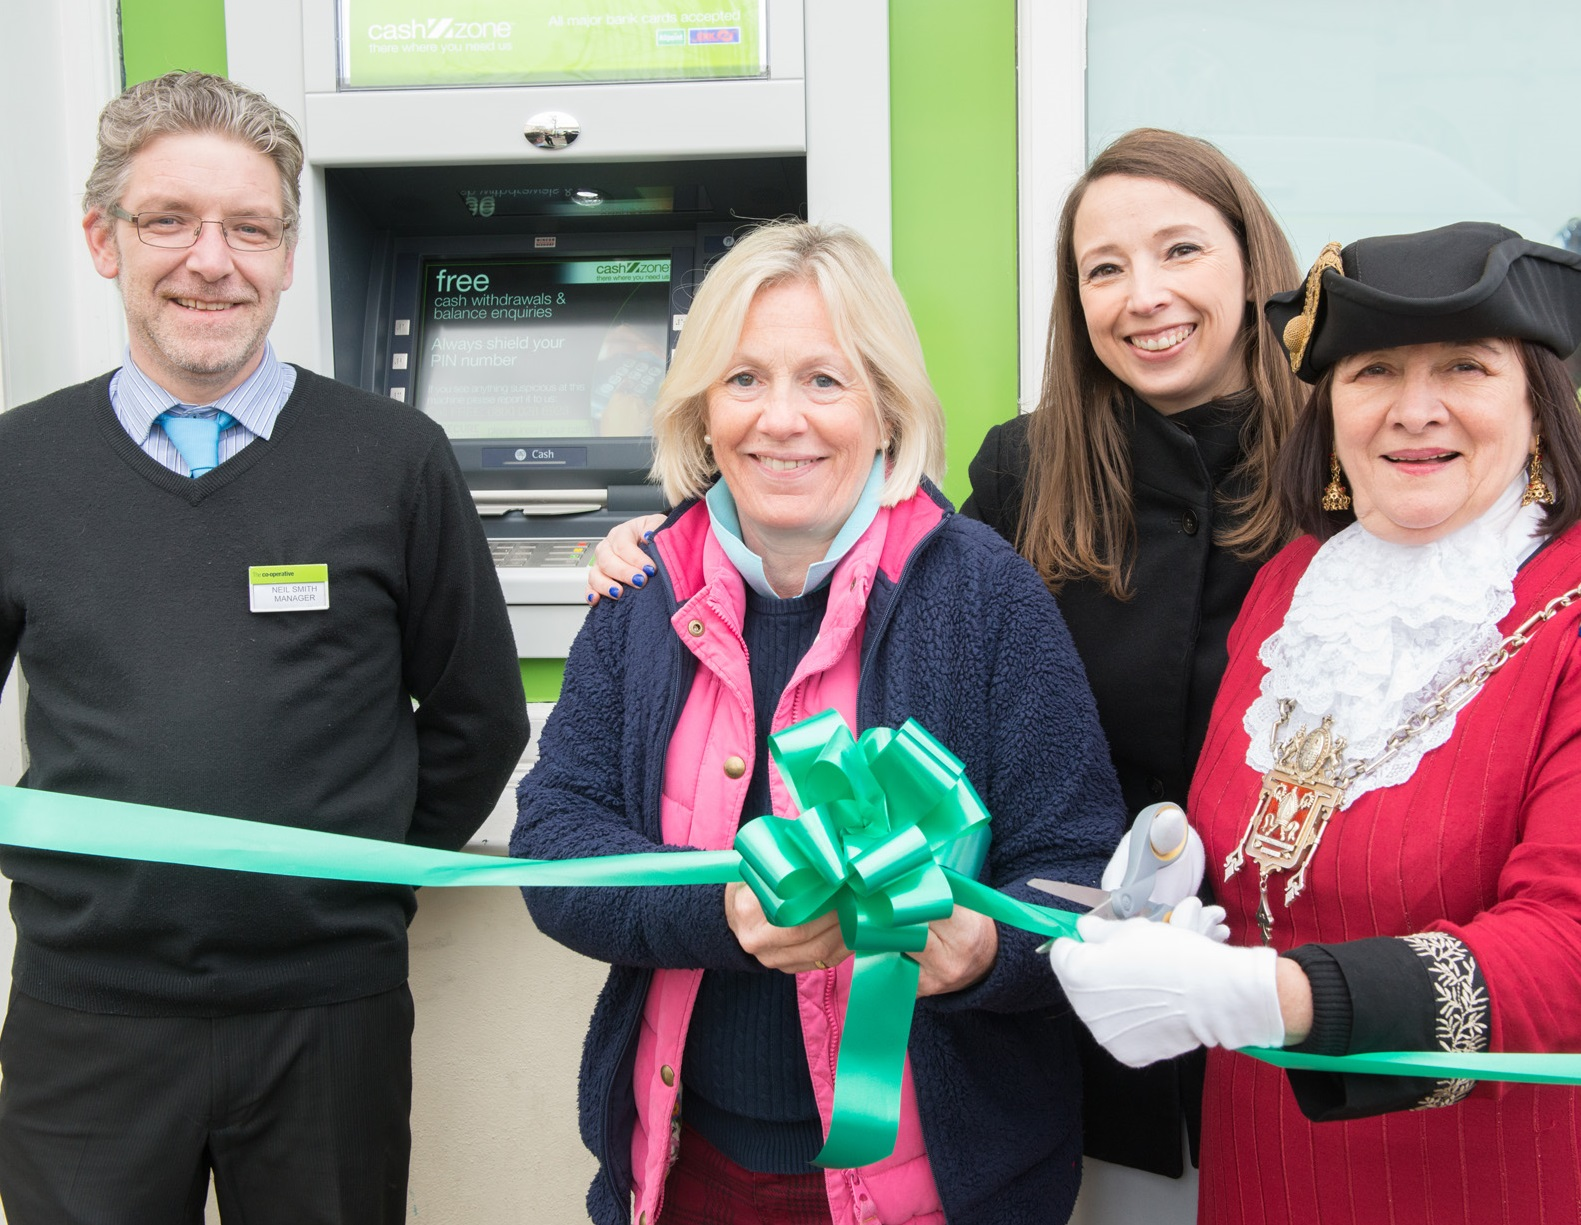 Cardtronics_ATM_Glastonbury_03.02.16_launch_1.jpg